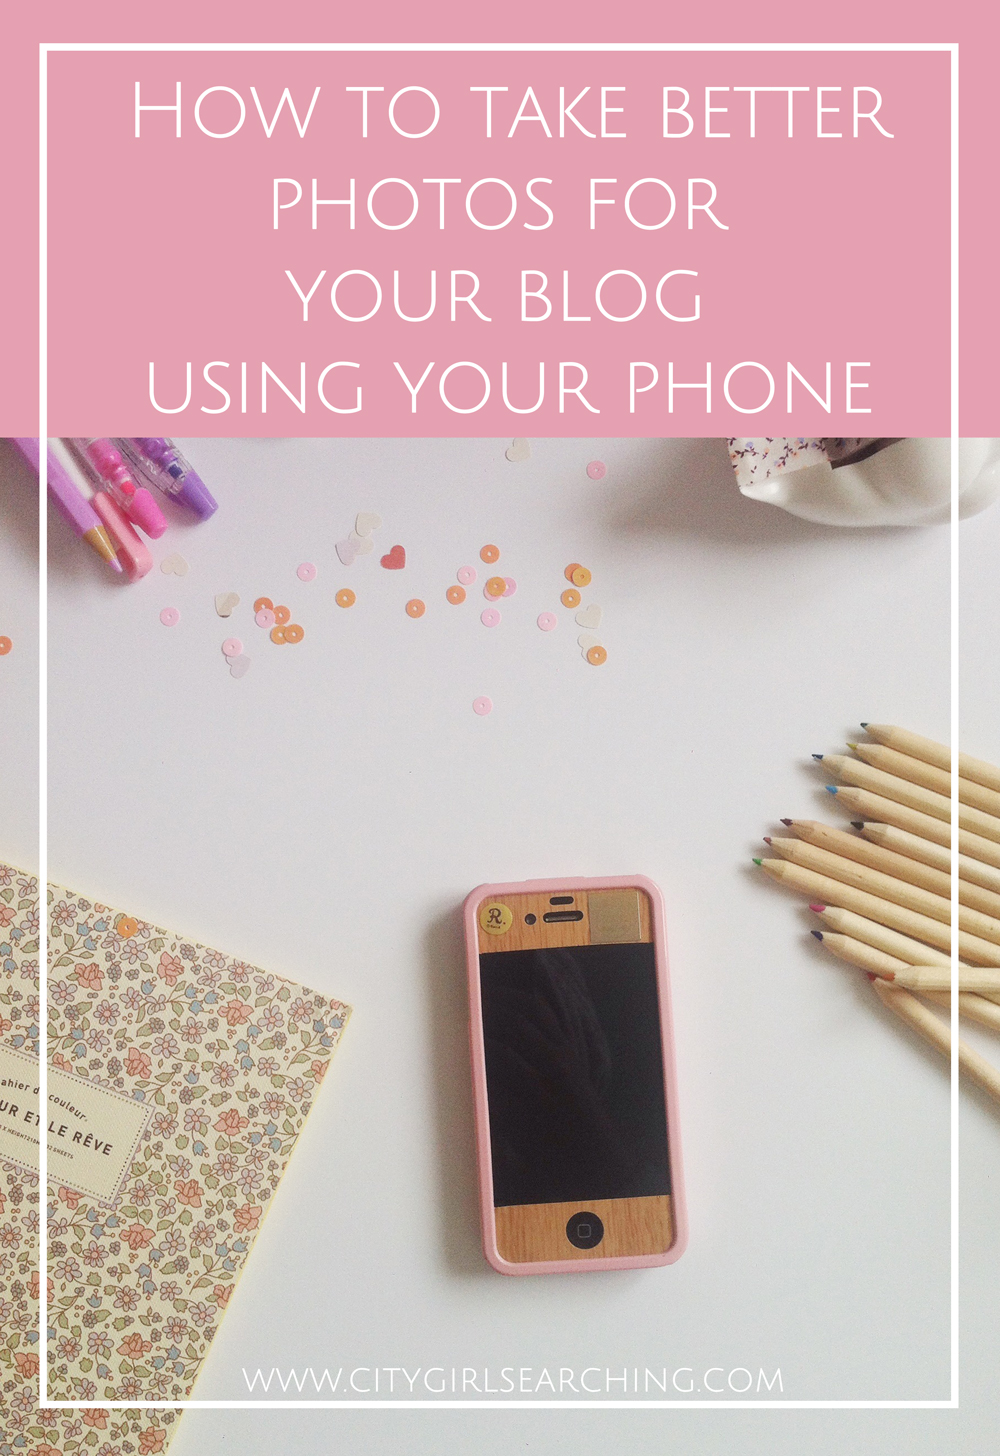 How to Take Better Photographs for your blog using your phone